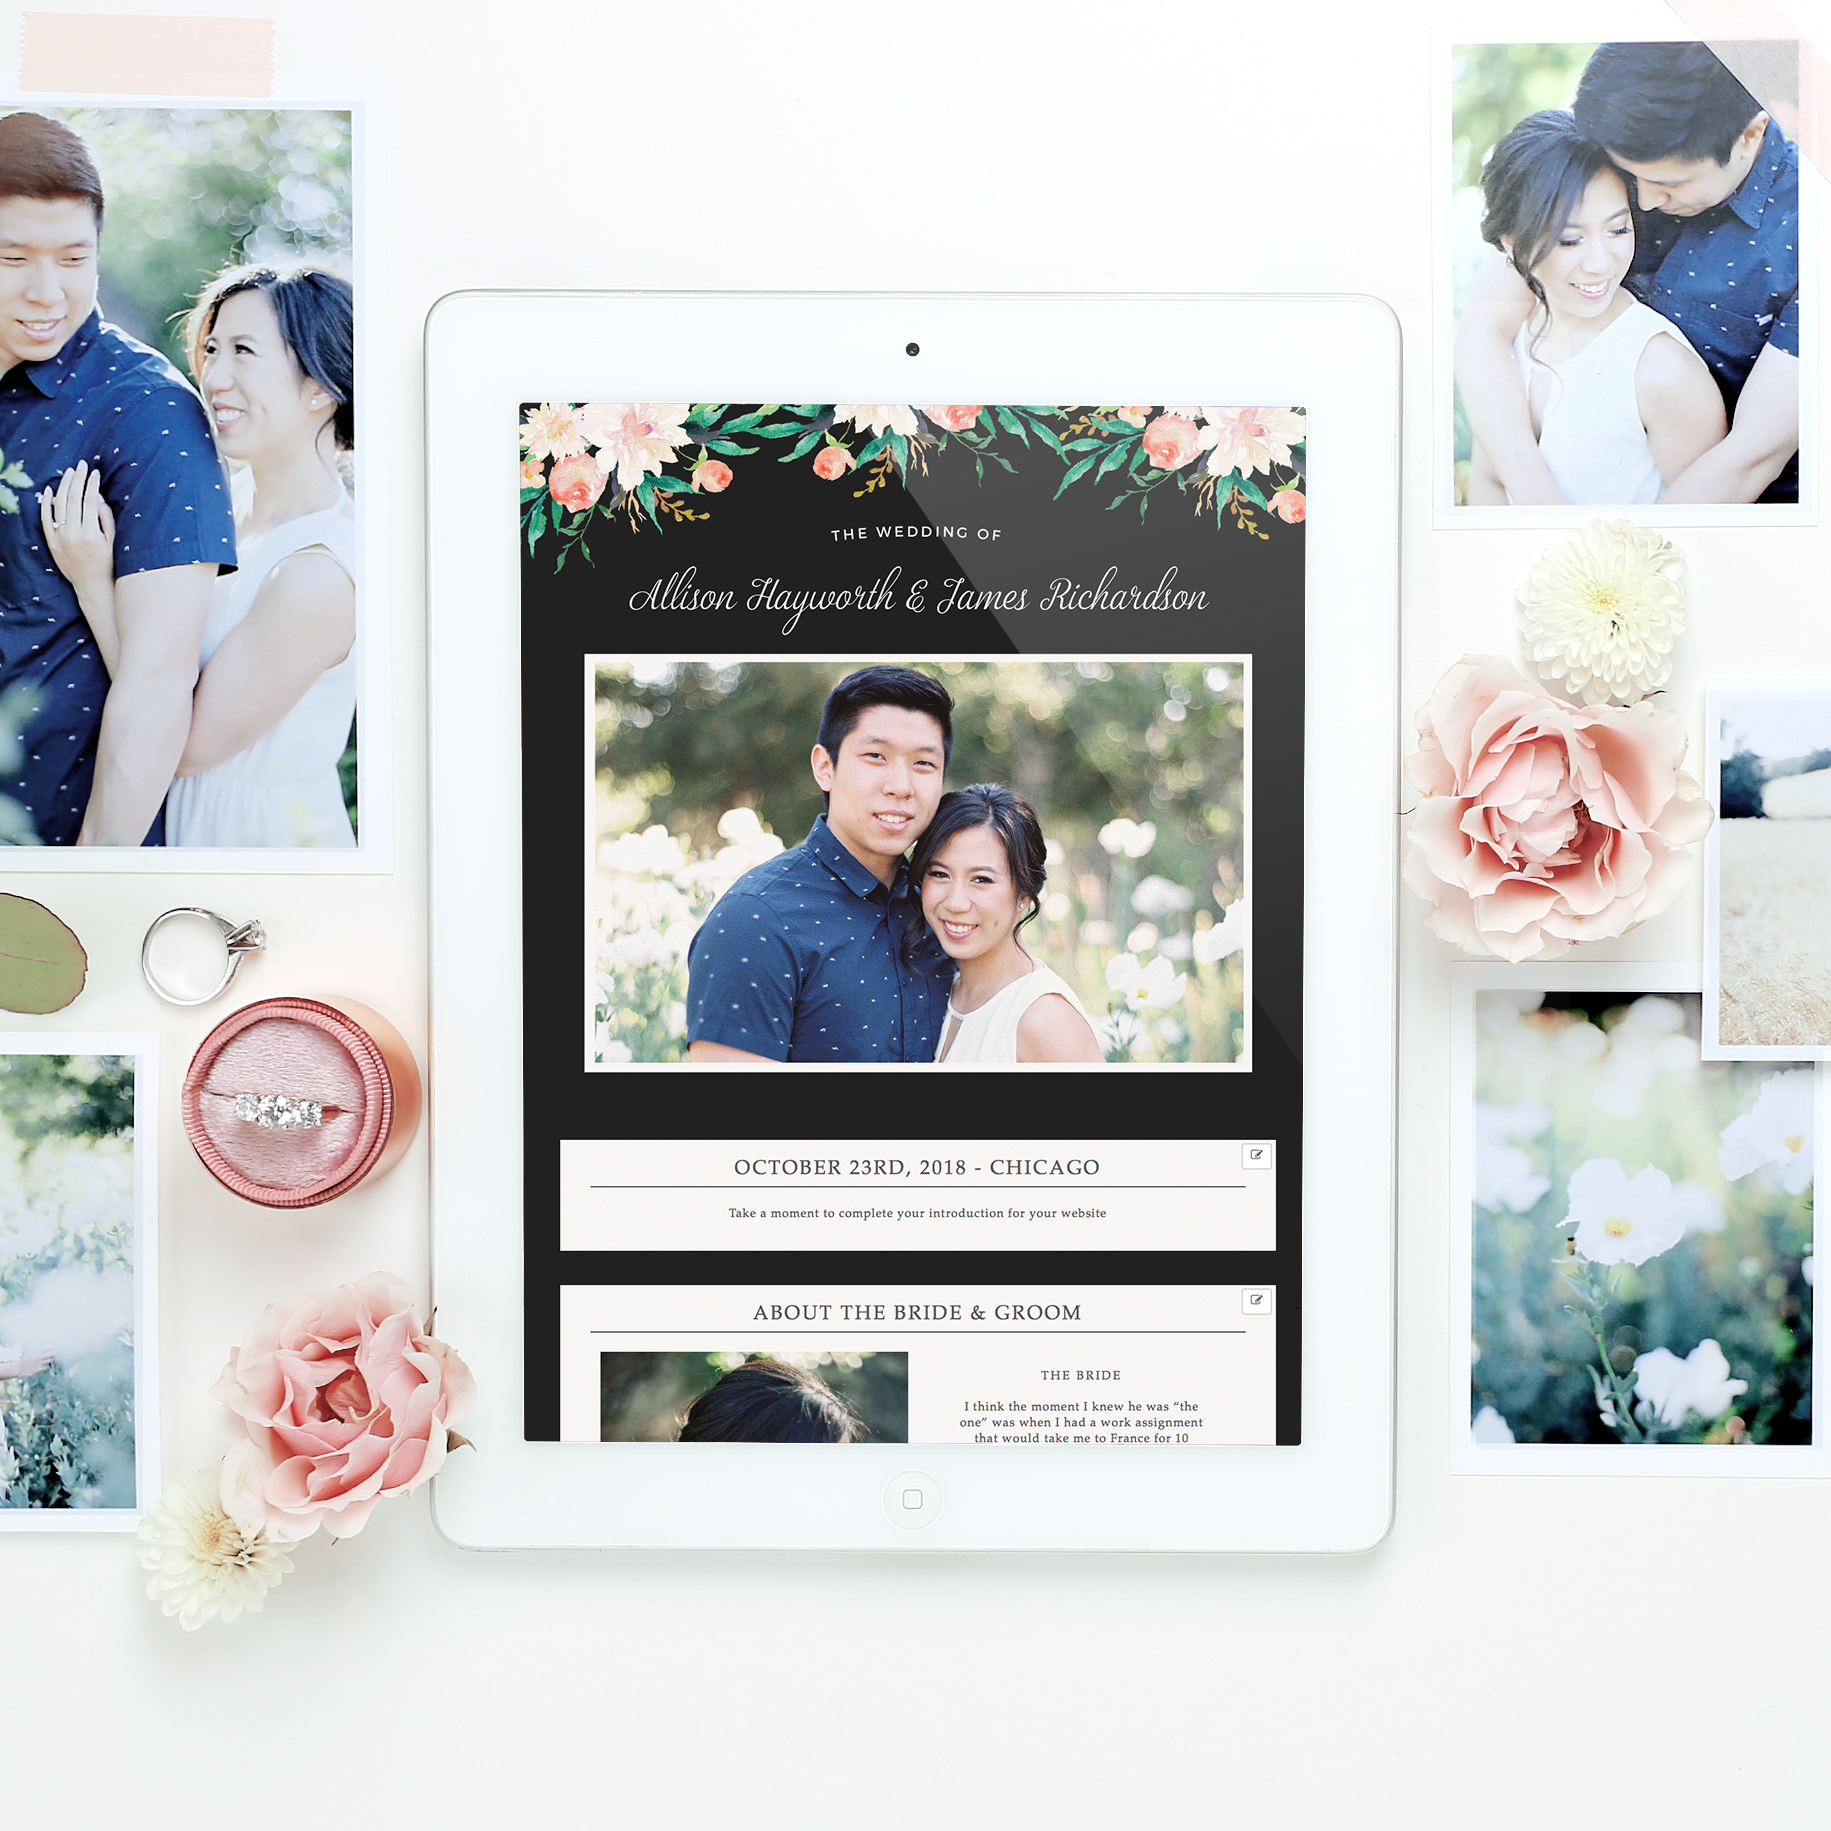 DSA Photography - Full-service boutique Wedding Photography and Cinematography studio based in Los Angeles and Orange County.